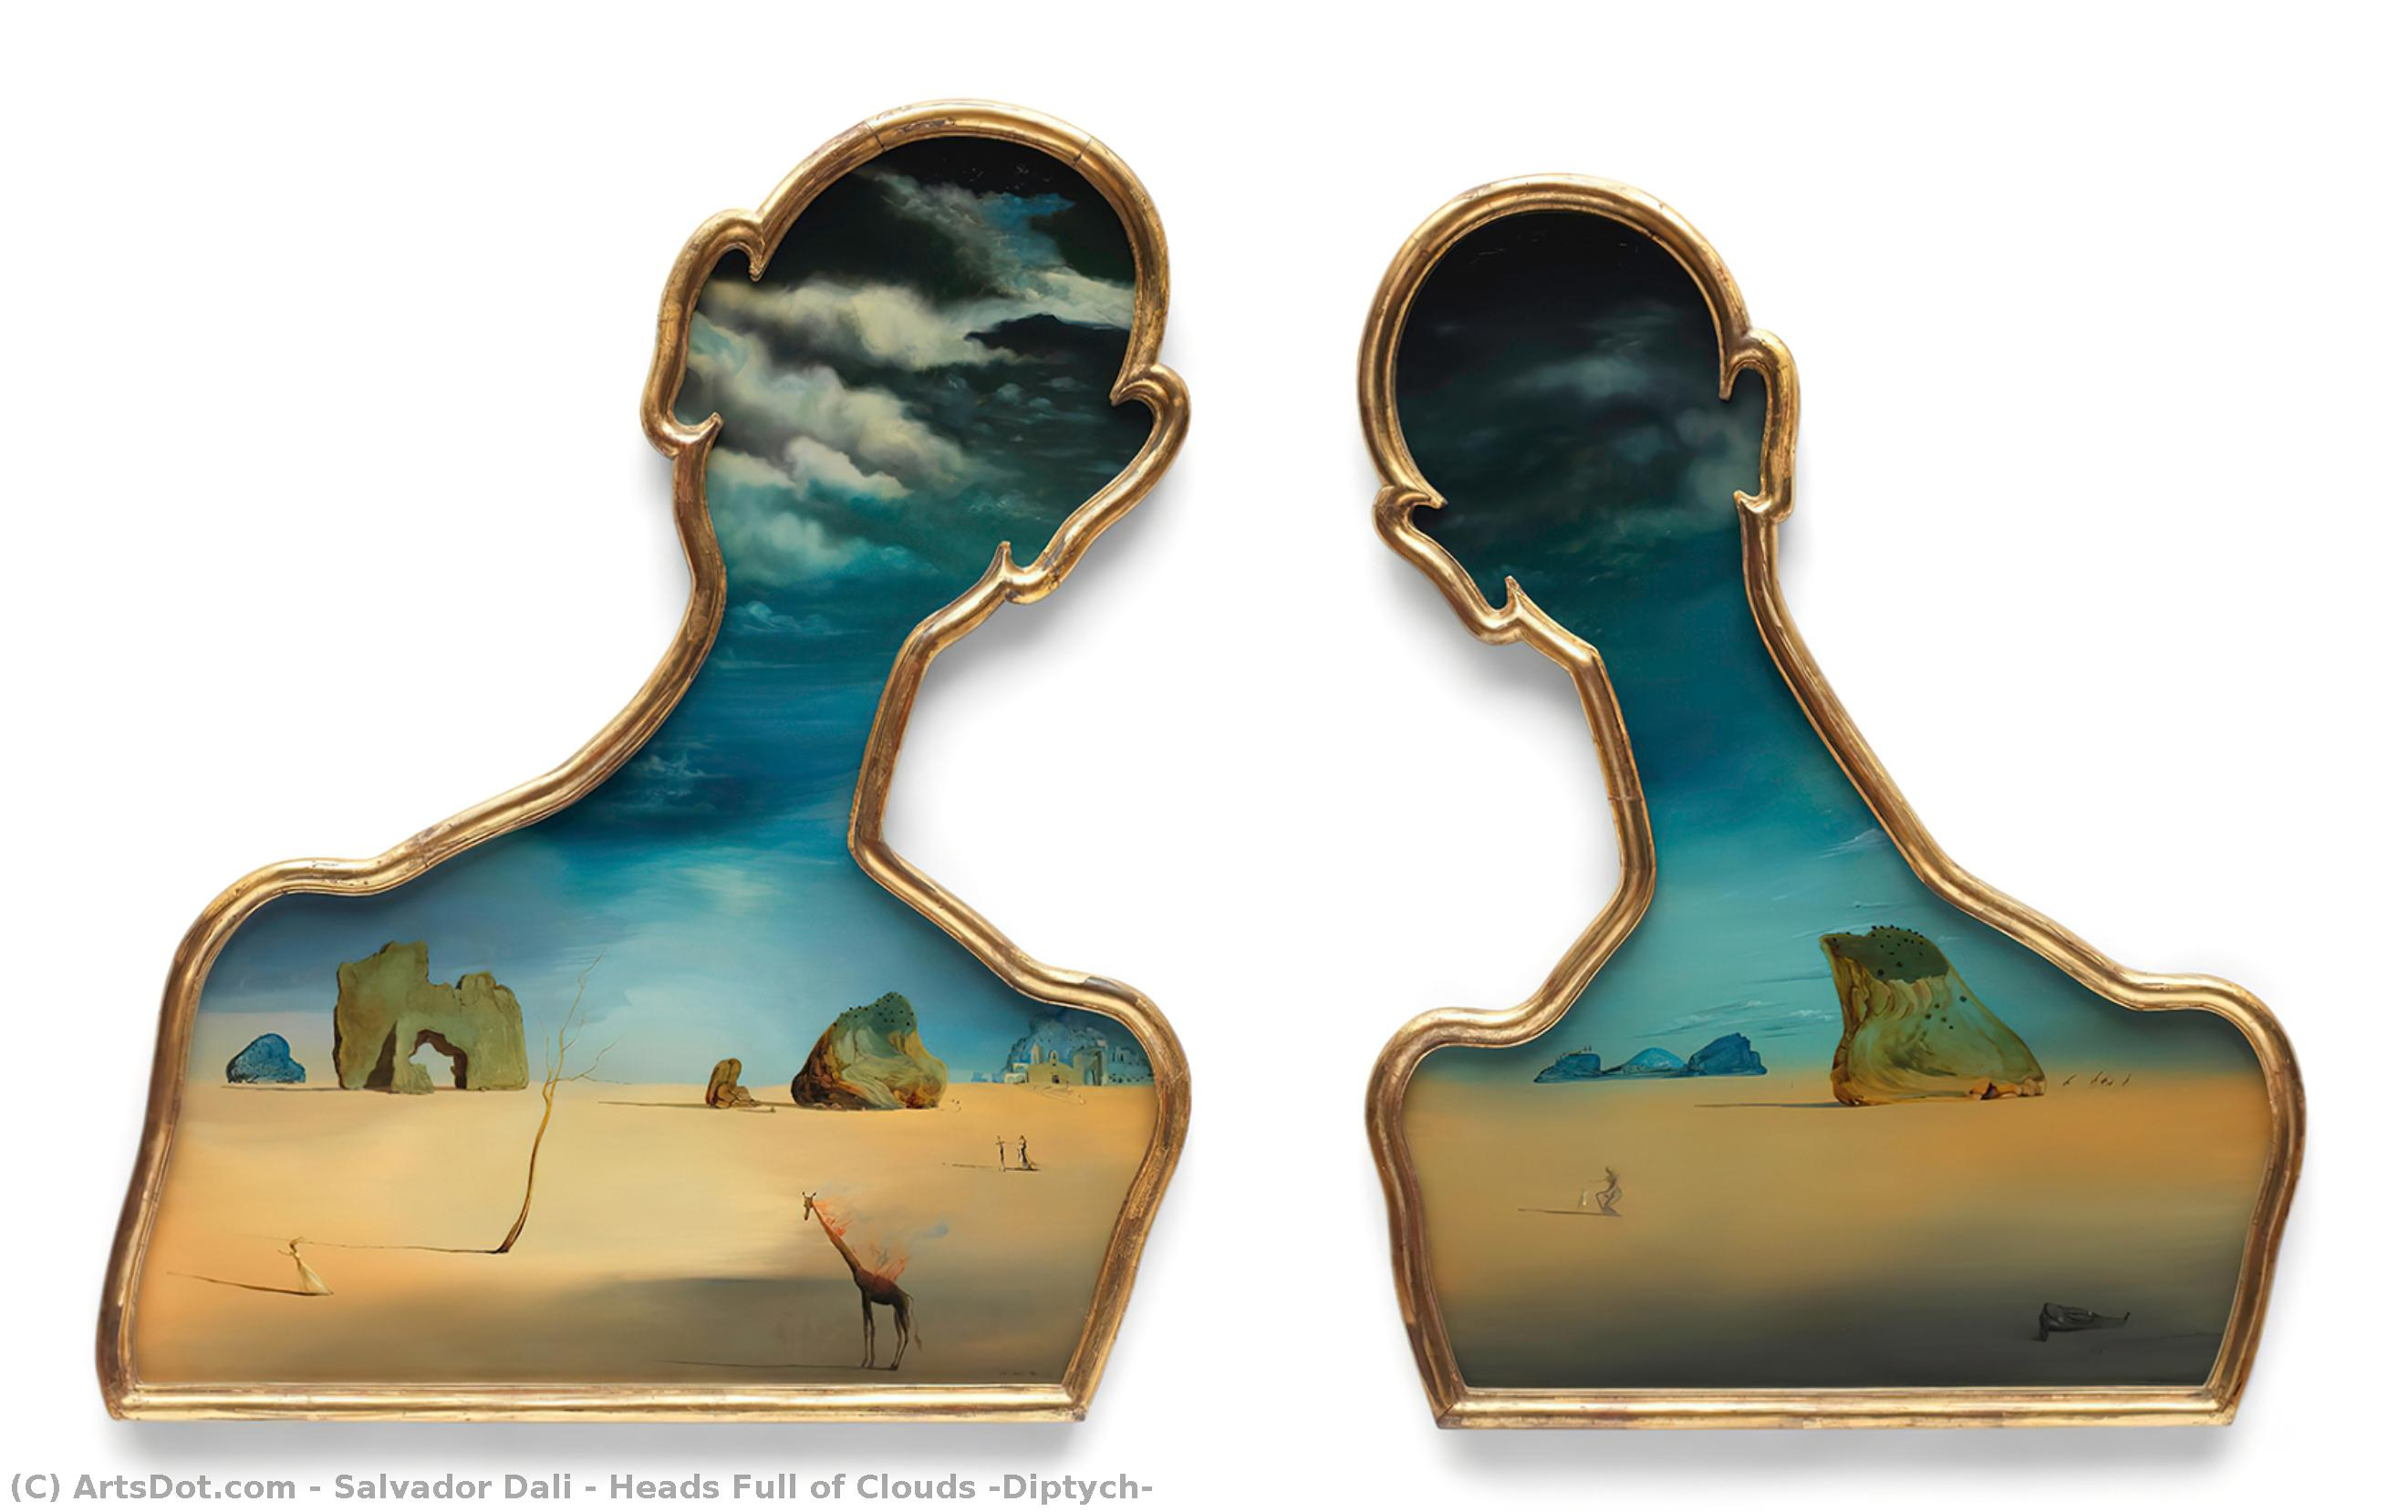 Wikioo.org - The Encyclopedia of Fine Arts - Painting, Artwork by Salvador Dali - Heads Full of Clouds (Diptych)